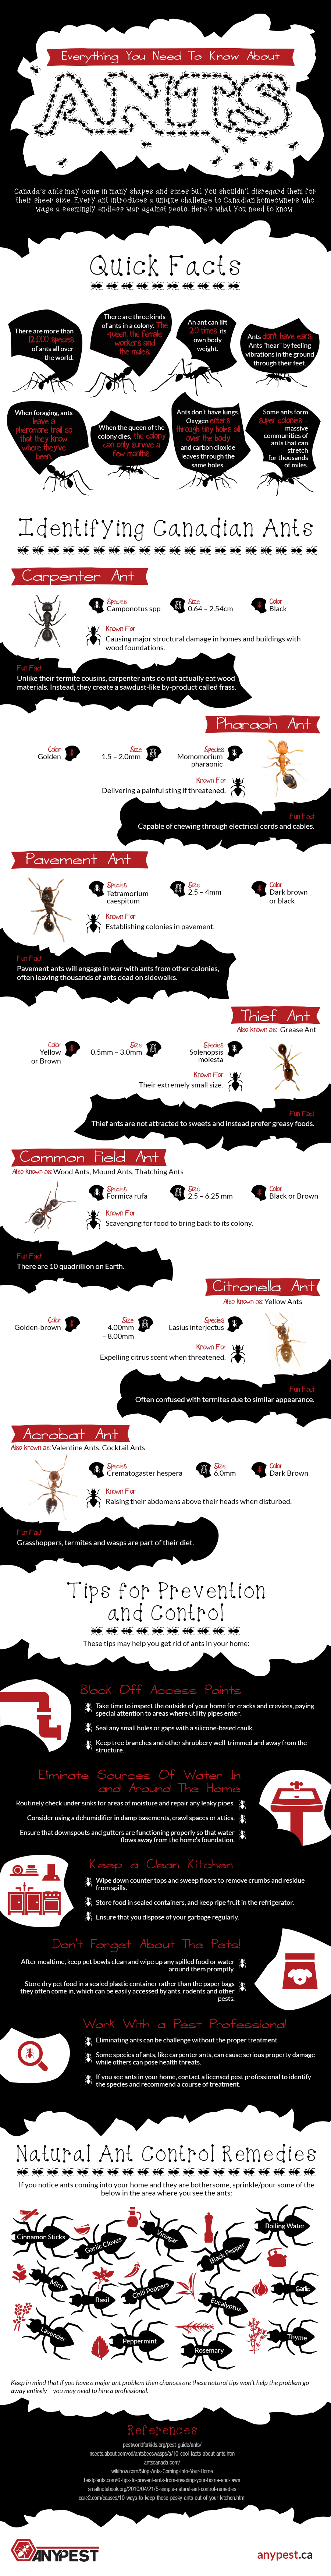 Everything You Need to Know About Ant Bites (and How to Avoid Them) Everything You Need to Know About Ant Bites (and How to Avoid Them) new pictures